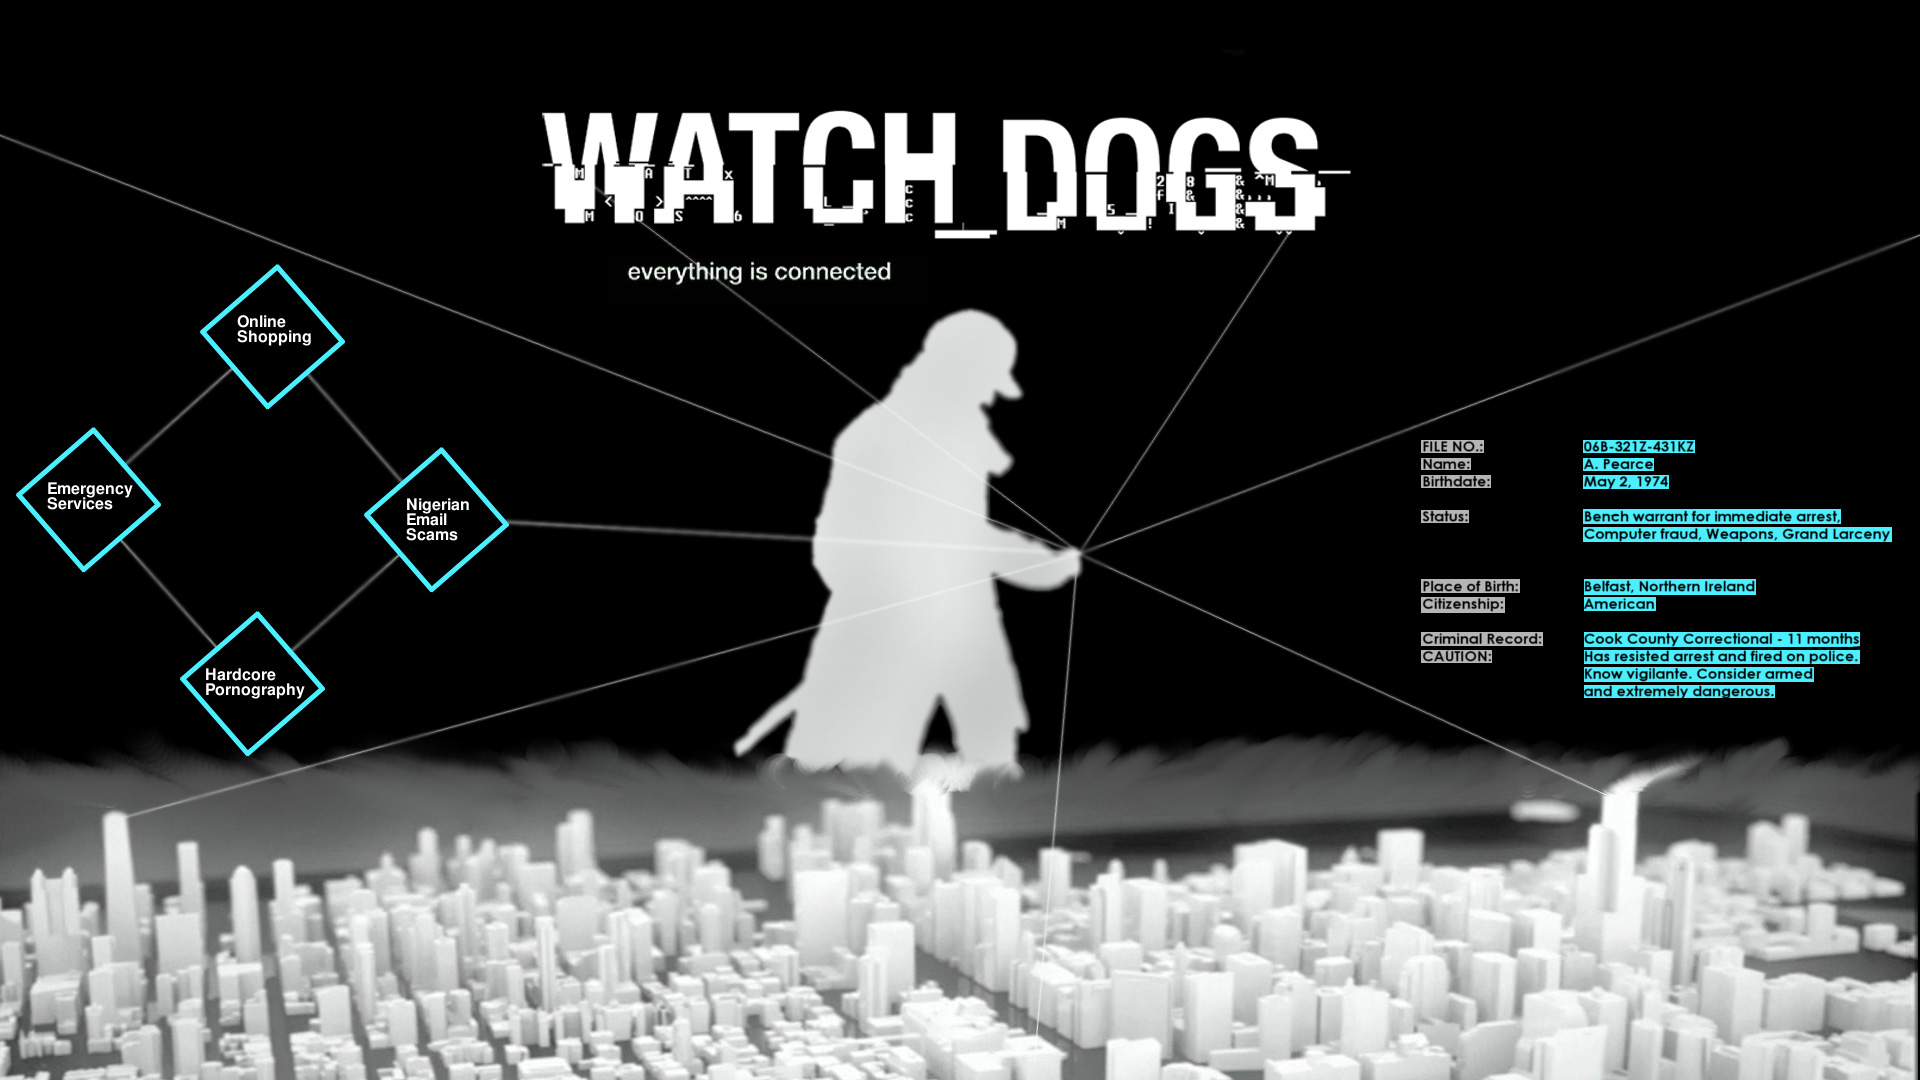 Watch Dogs Wallpaper HD Page 2 1920x1080